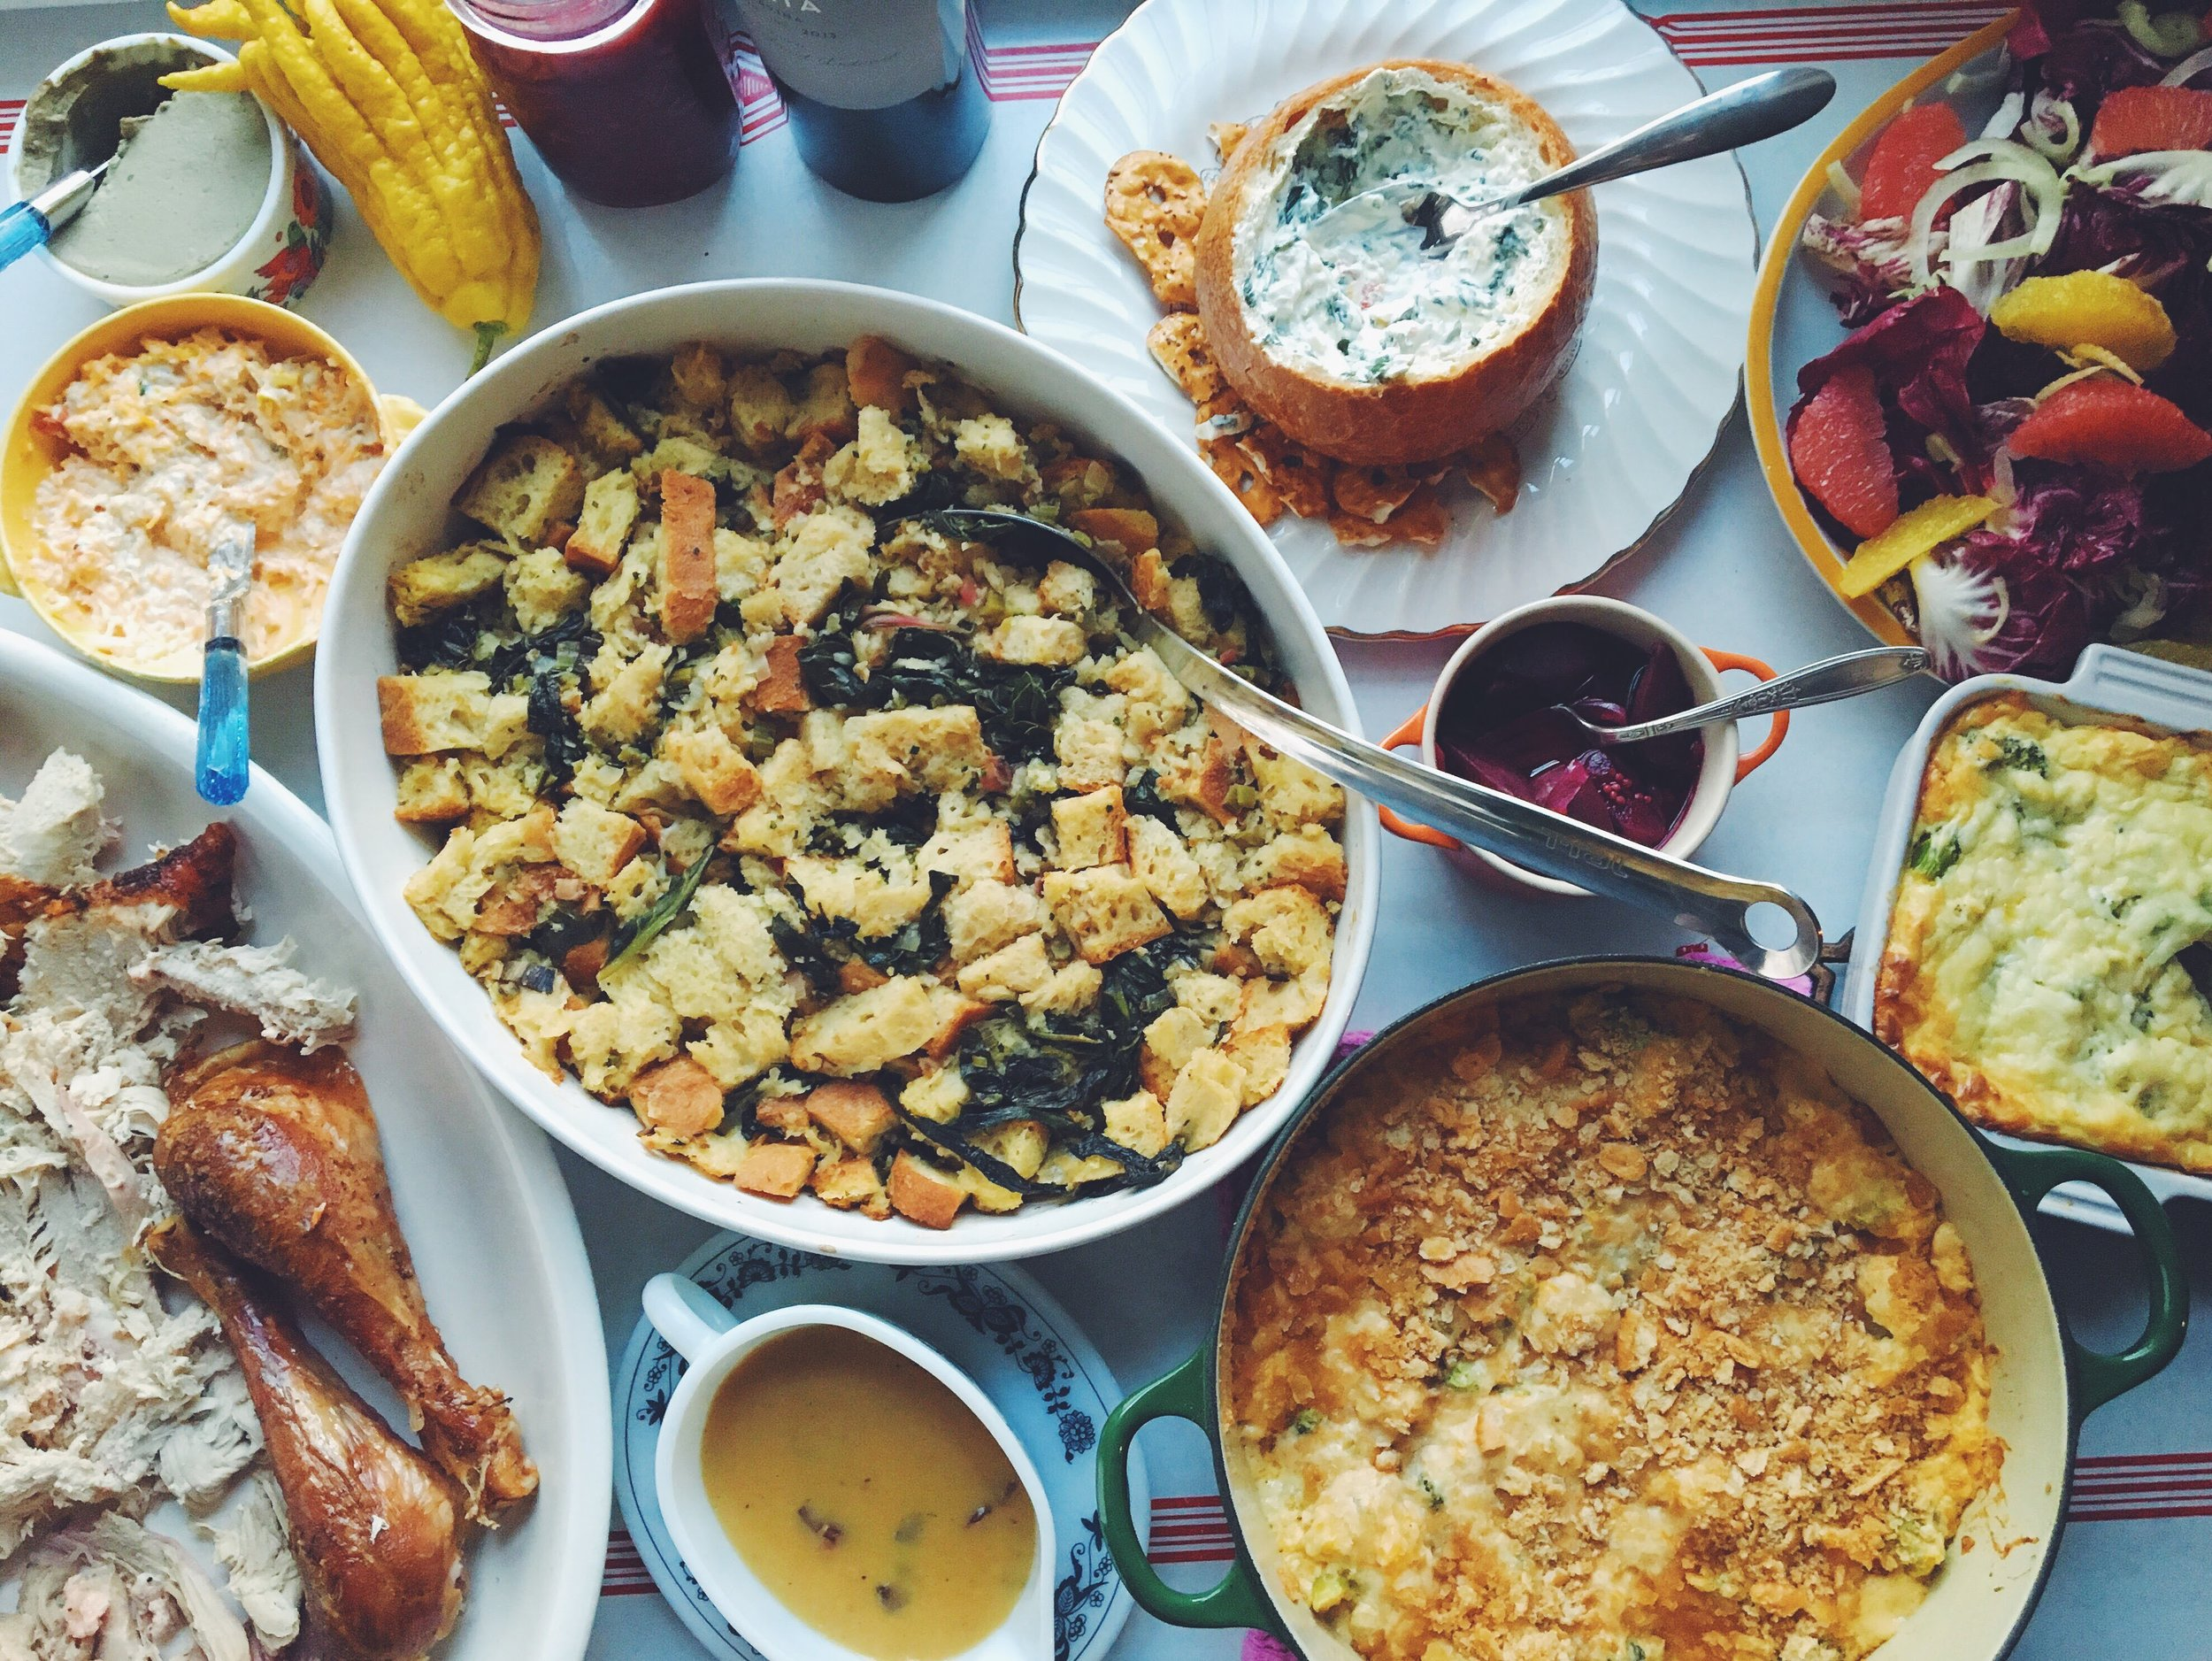 Remember the year I made more bread pudding than turkey? GOOD TIMES.